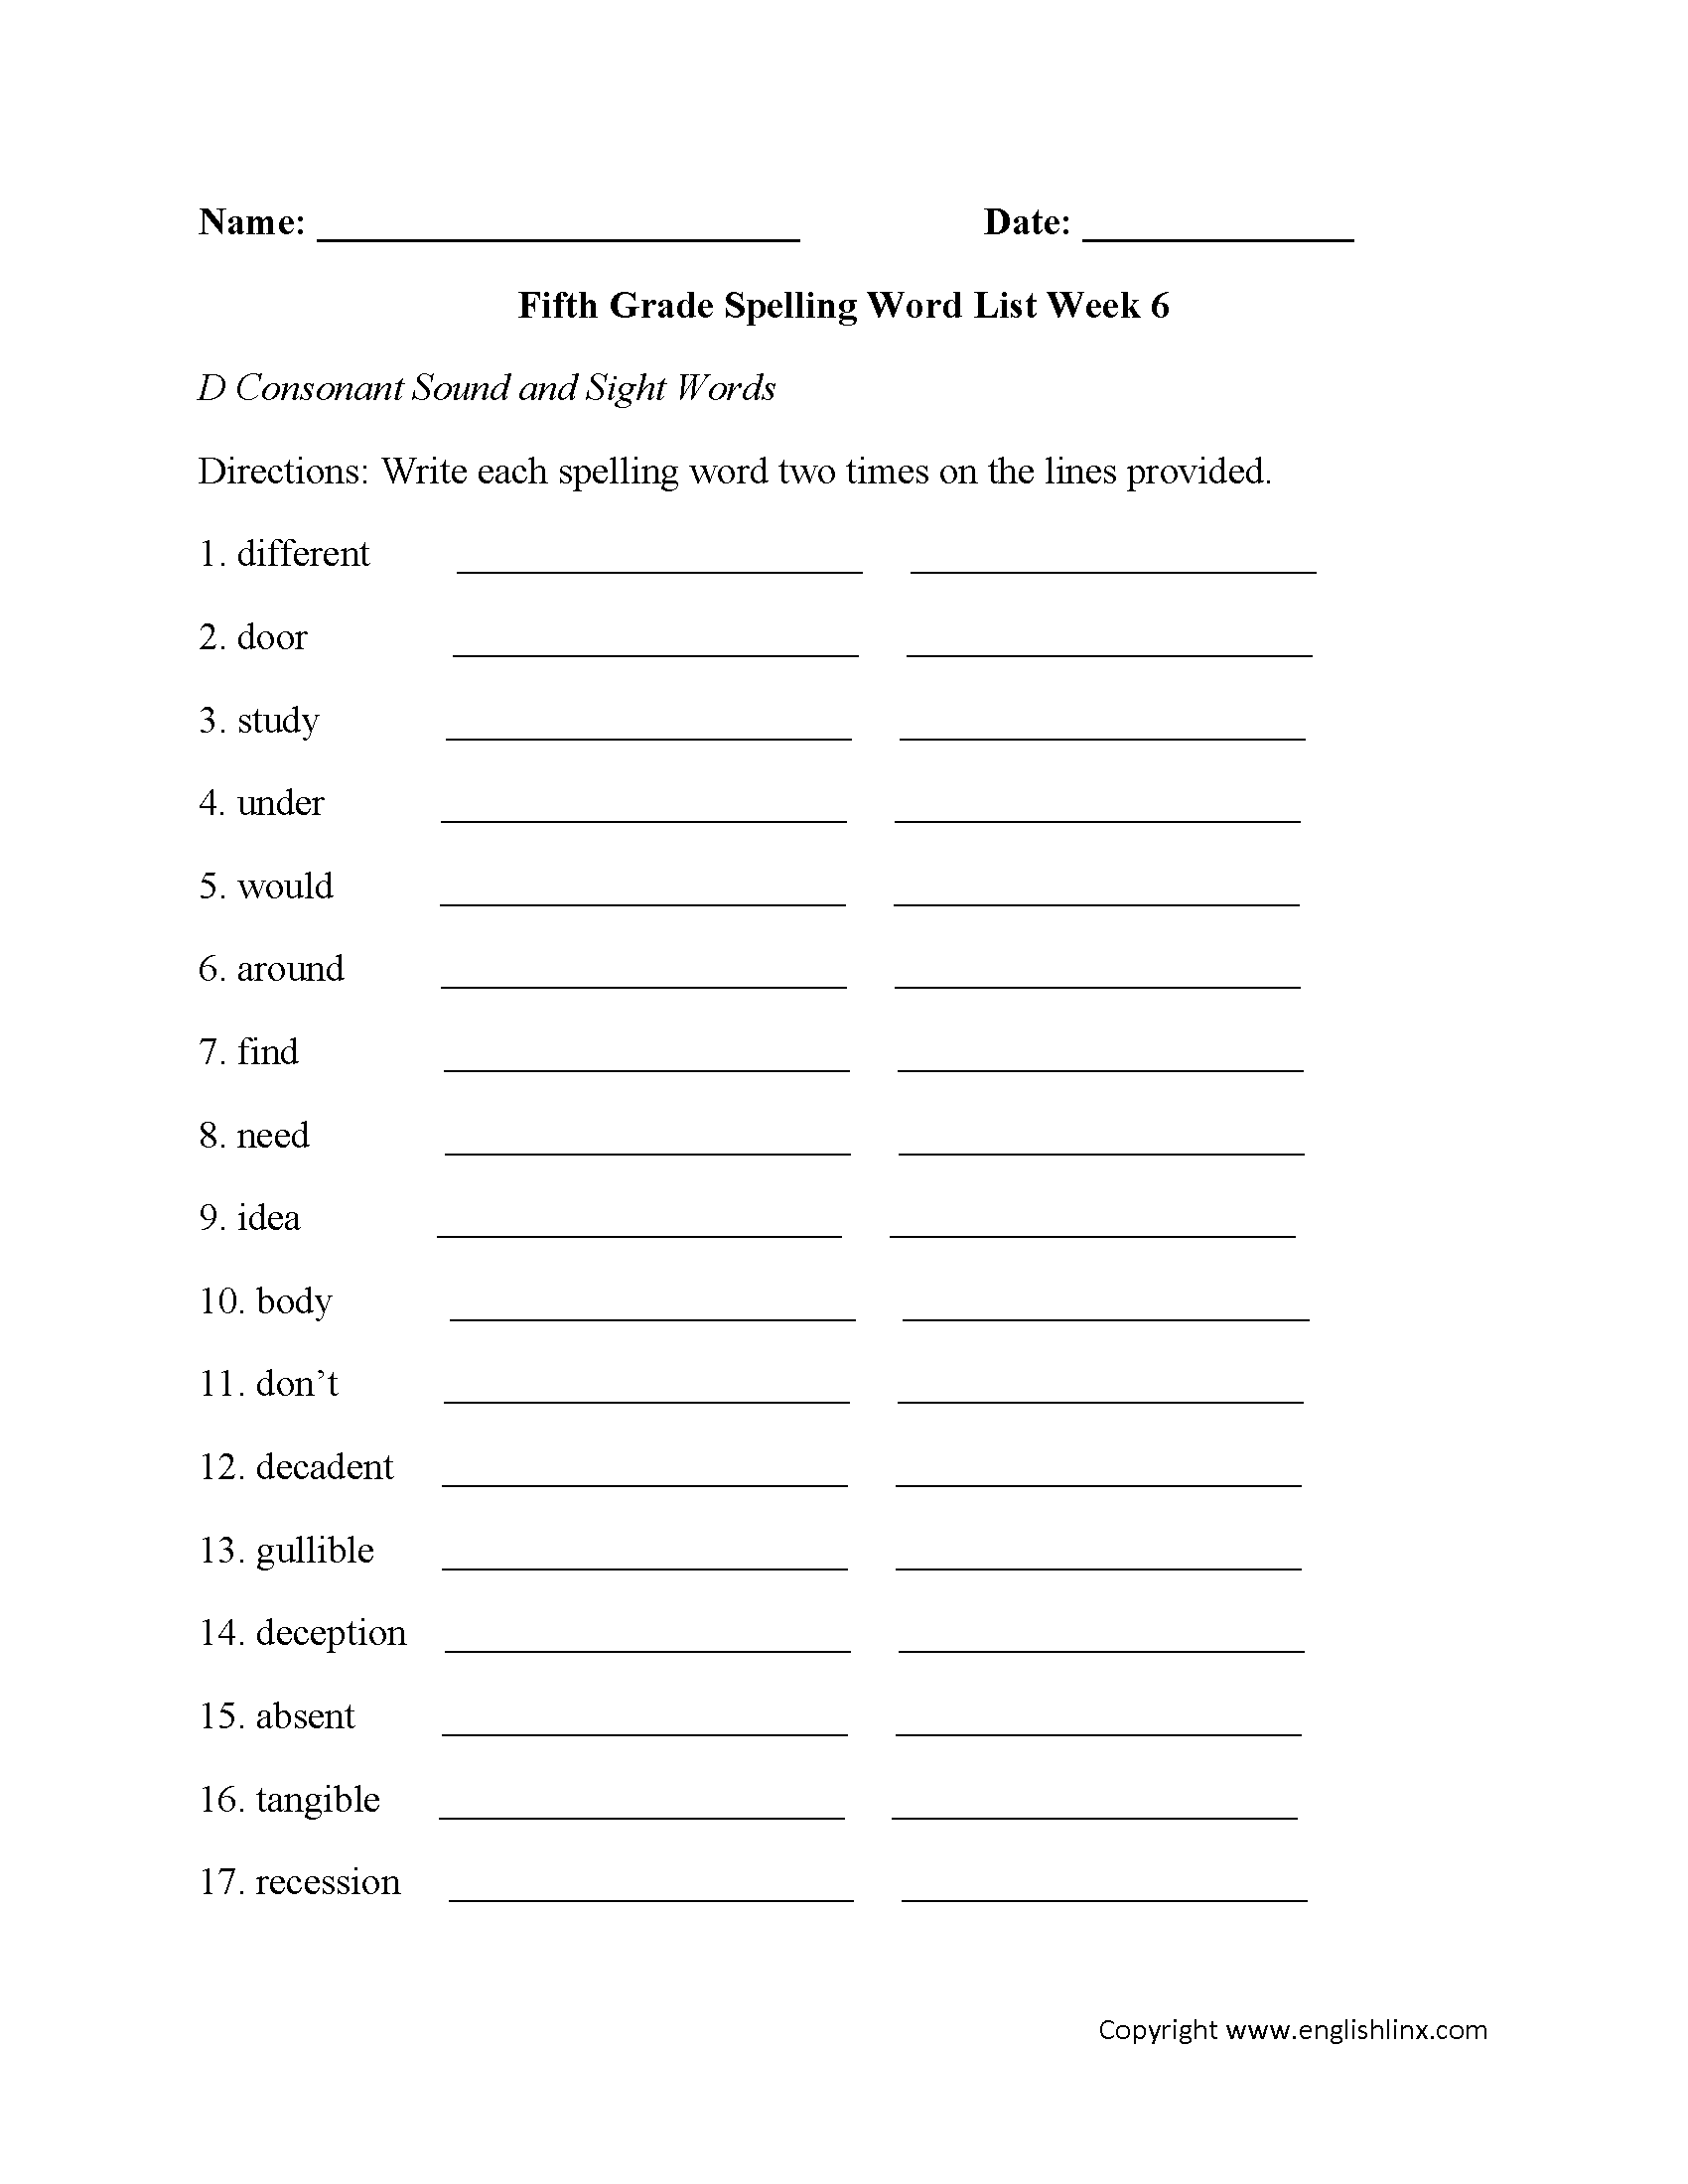 Spelling Worksheets | Fifth Grade Spelling Words Worksheets